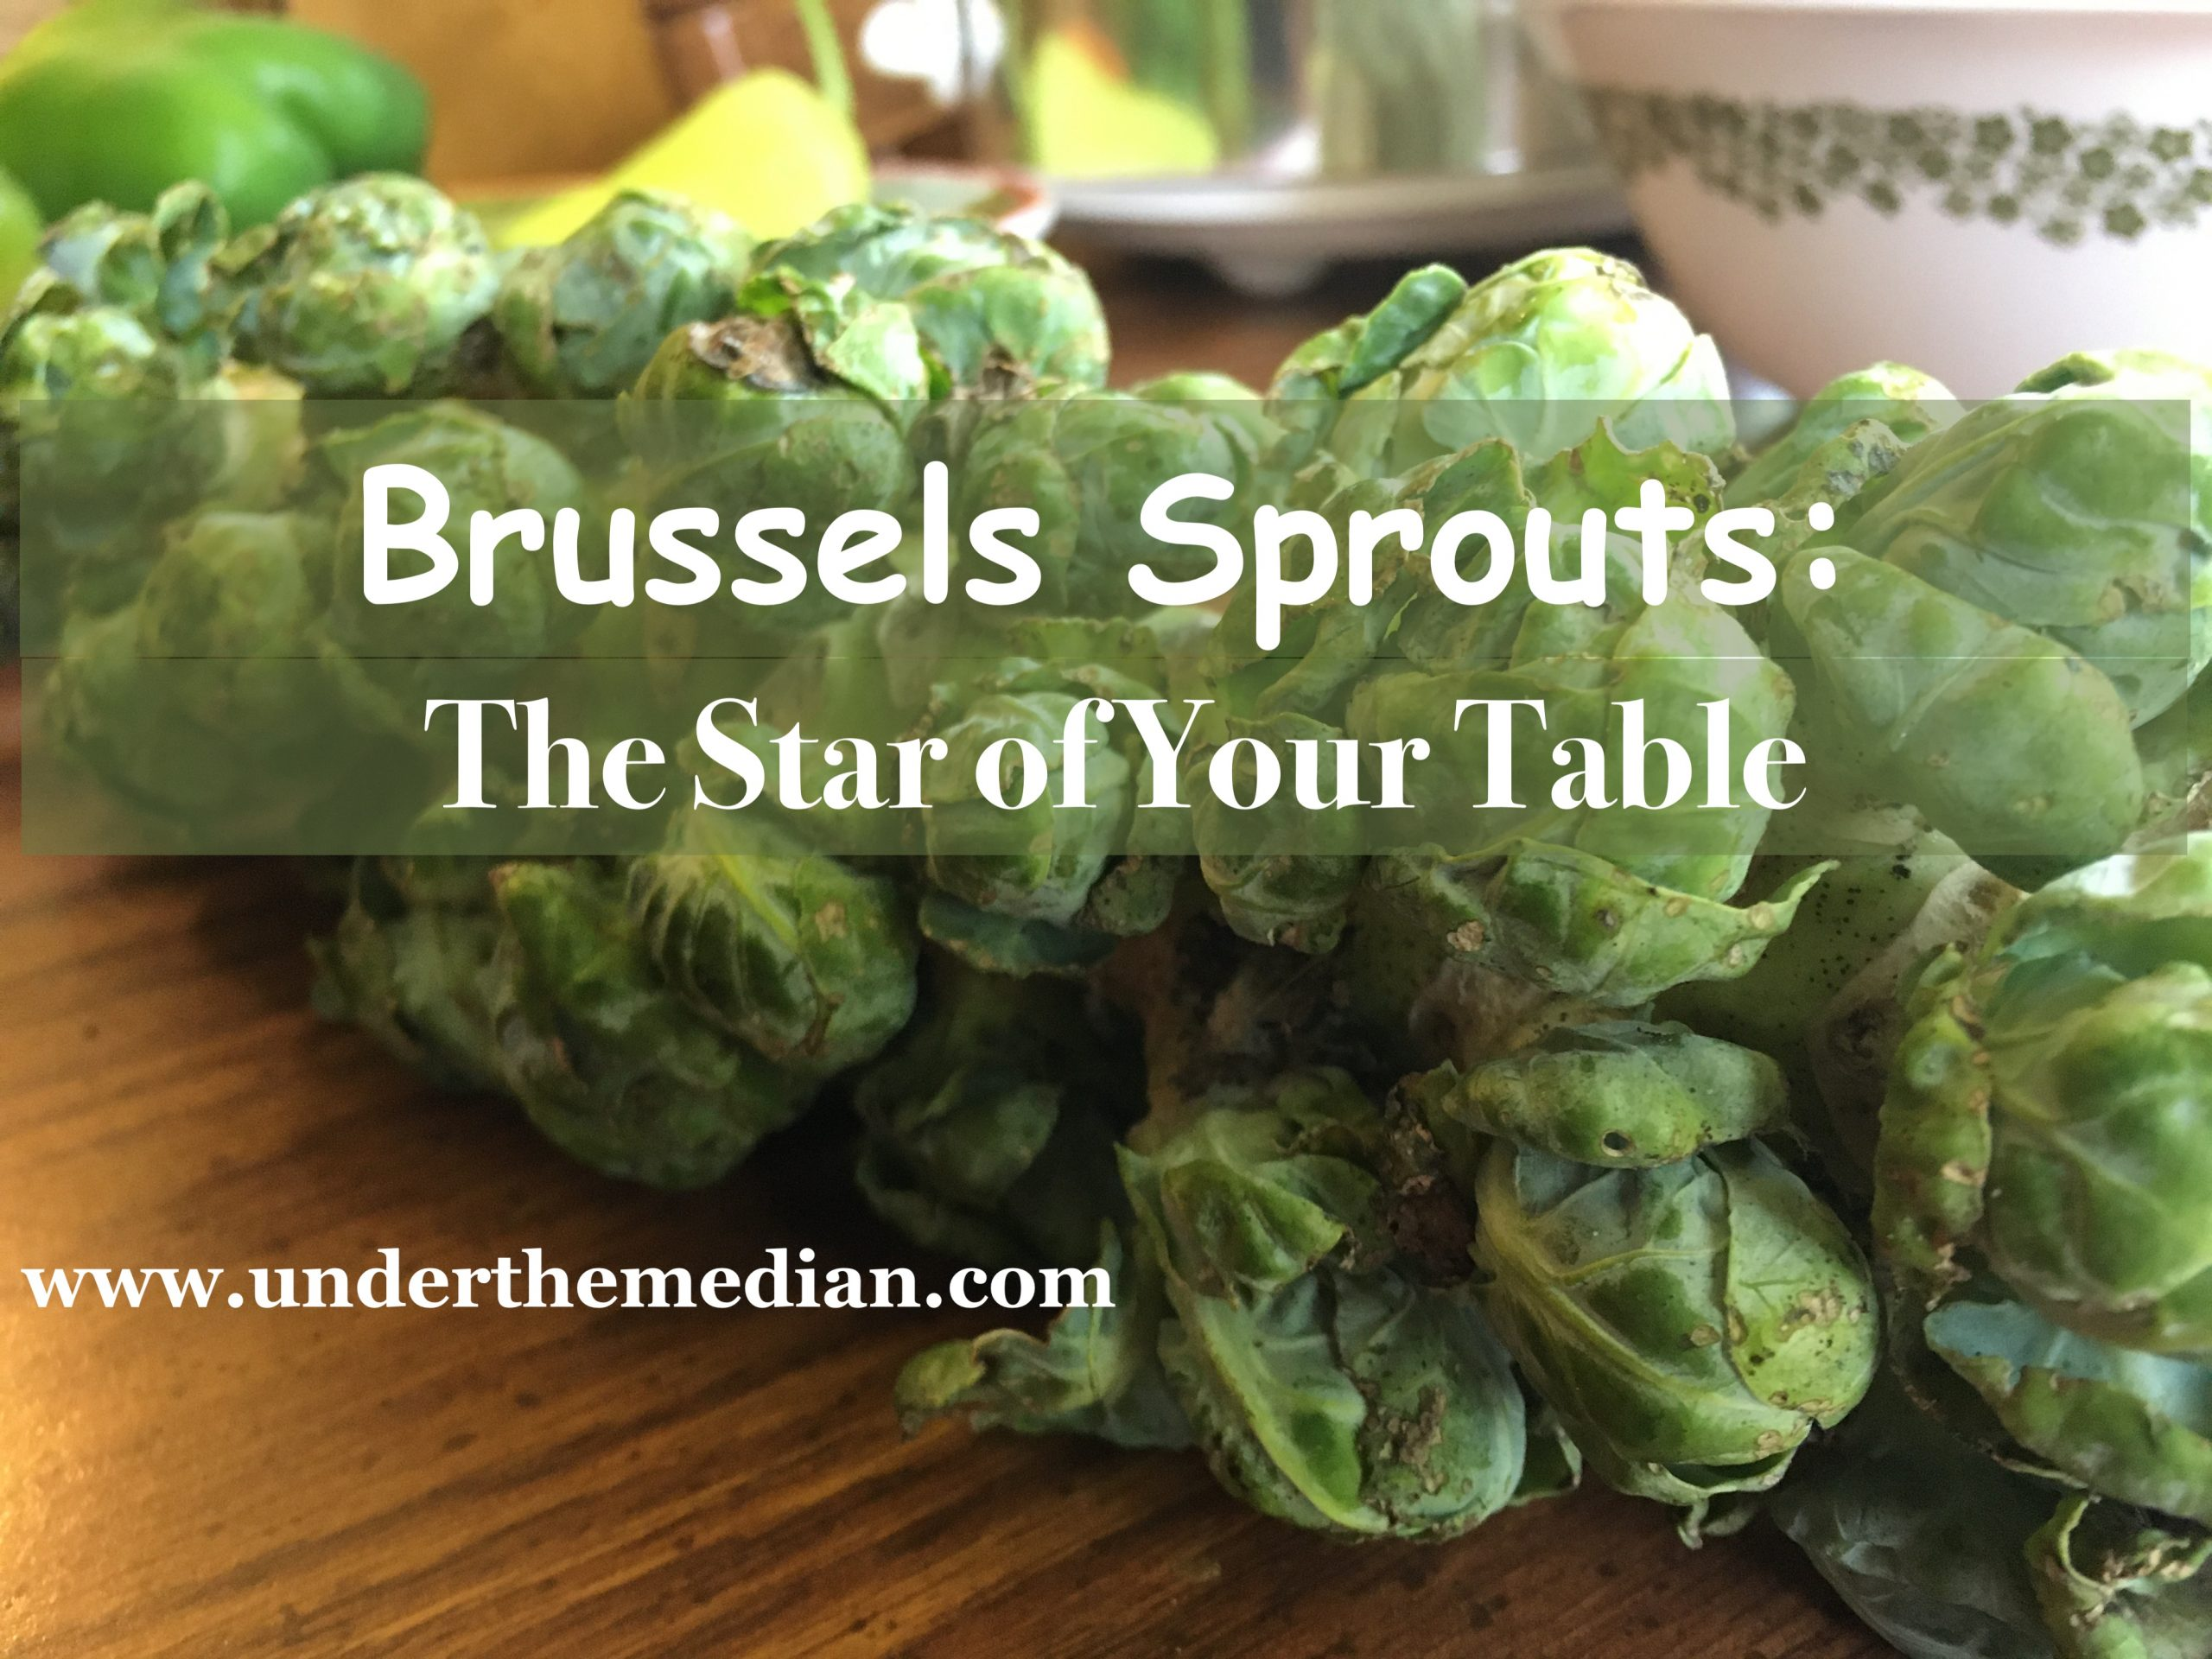 Why You Should Make Brussels Sprouts the Star of Your Table